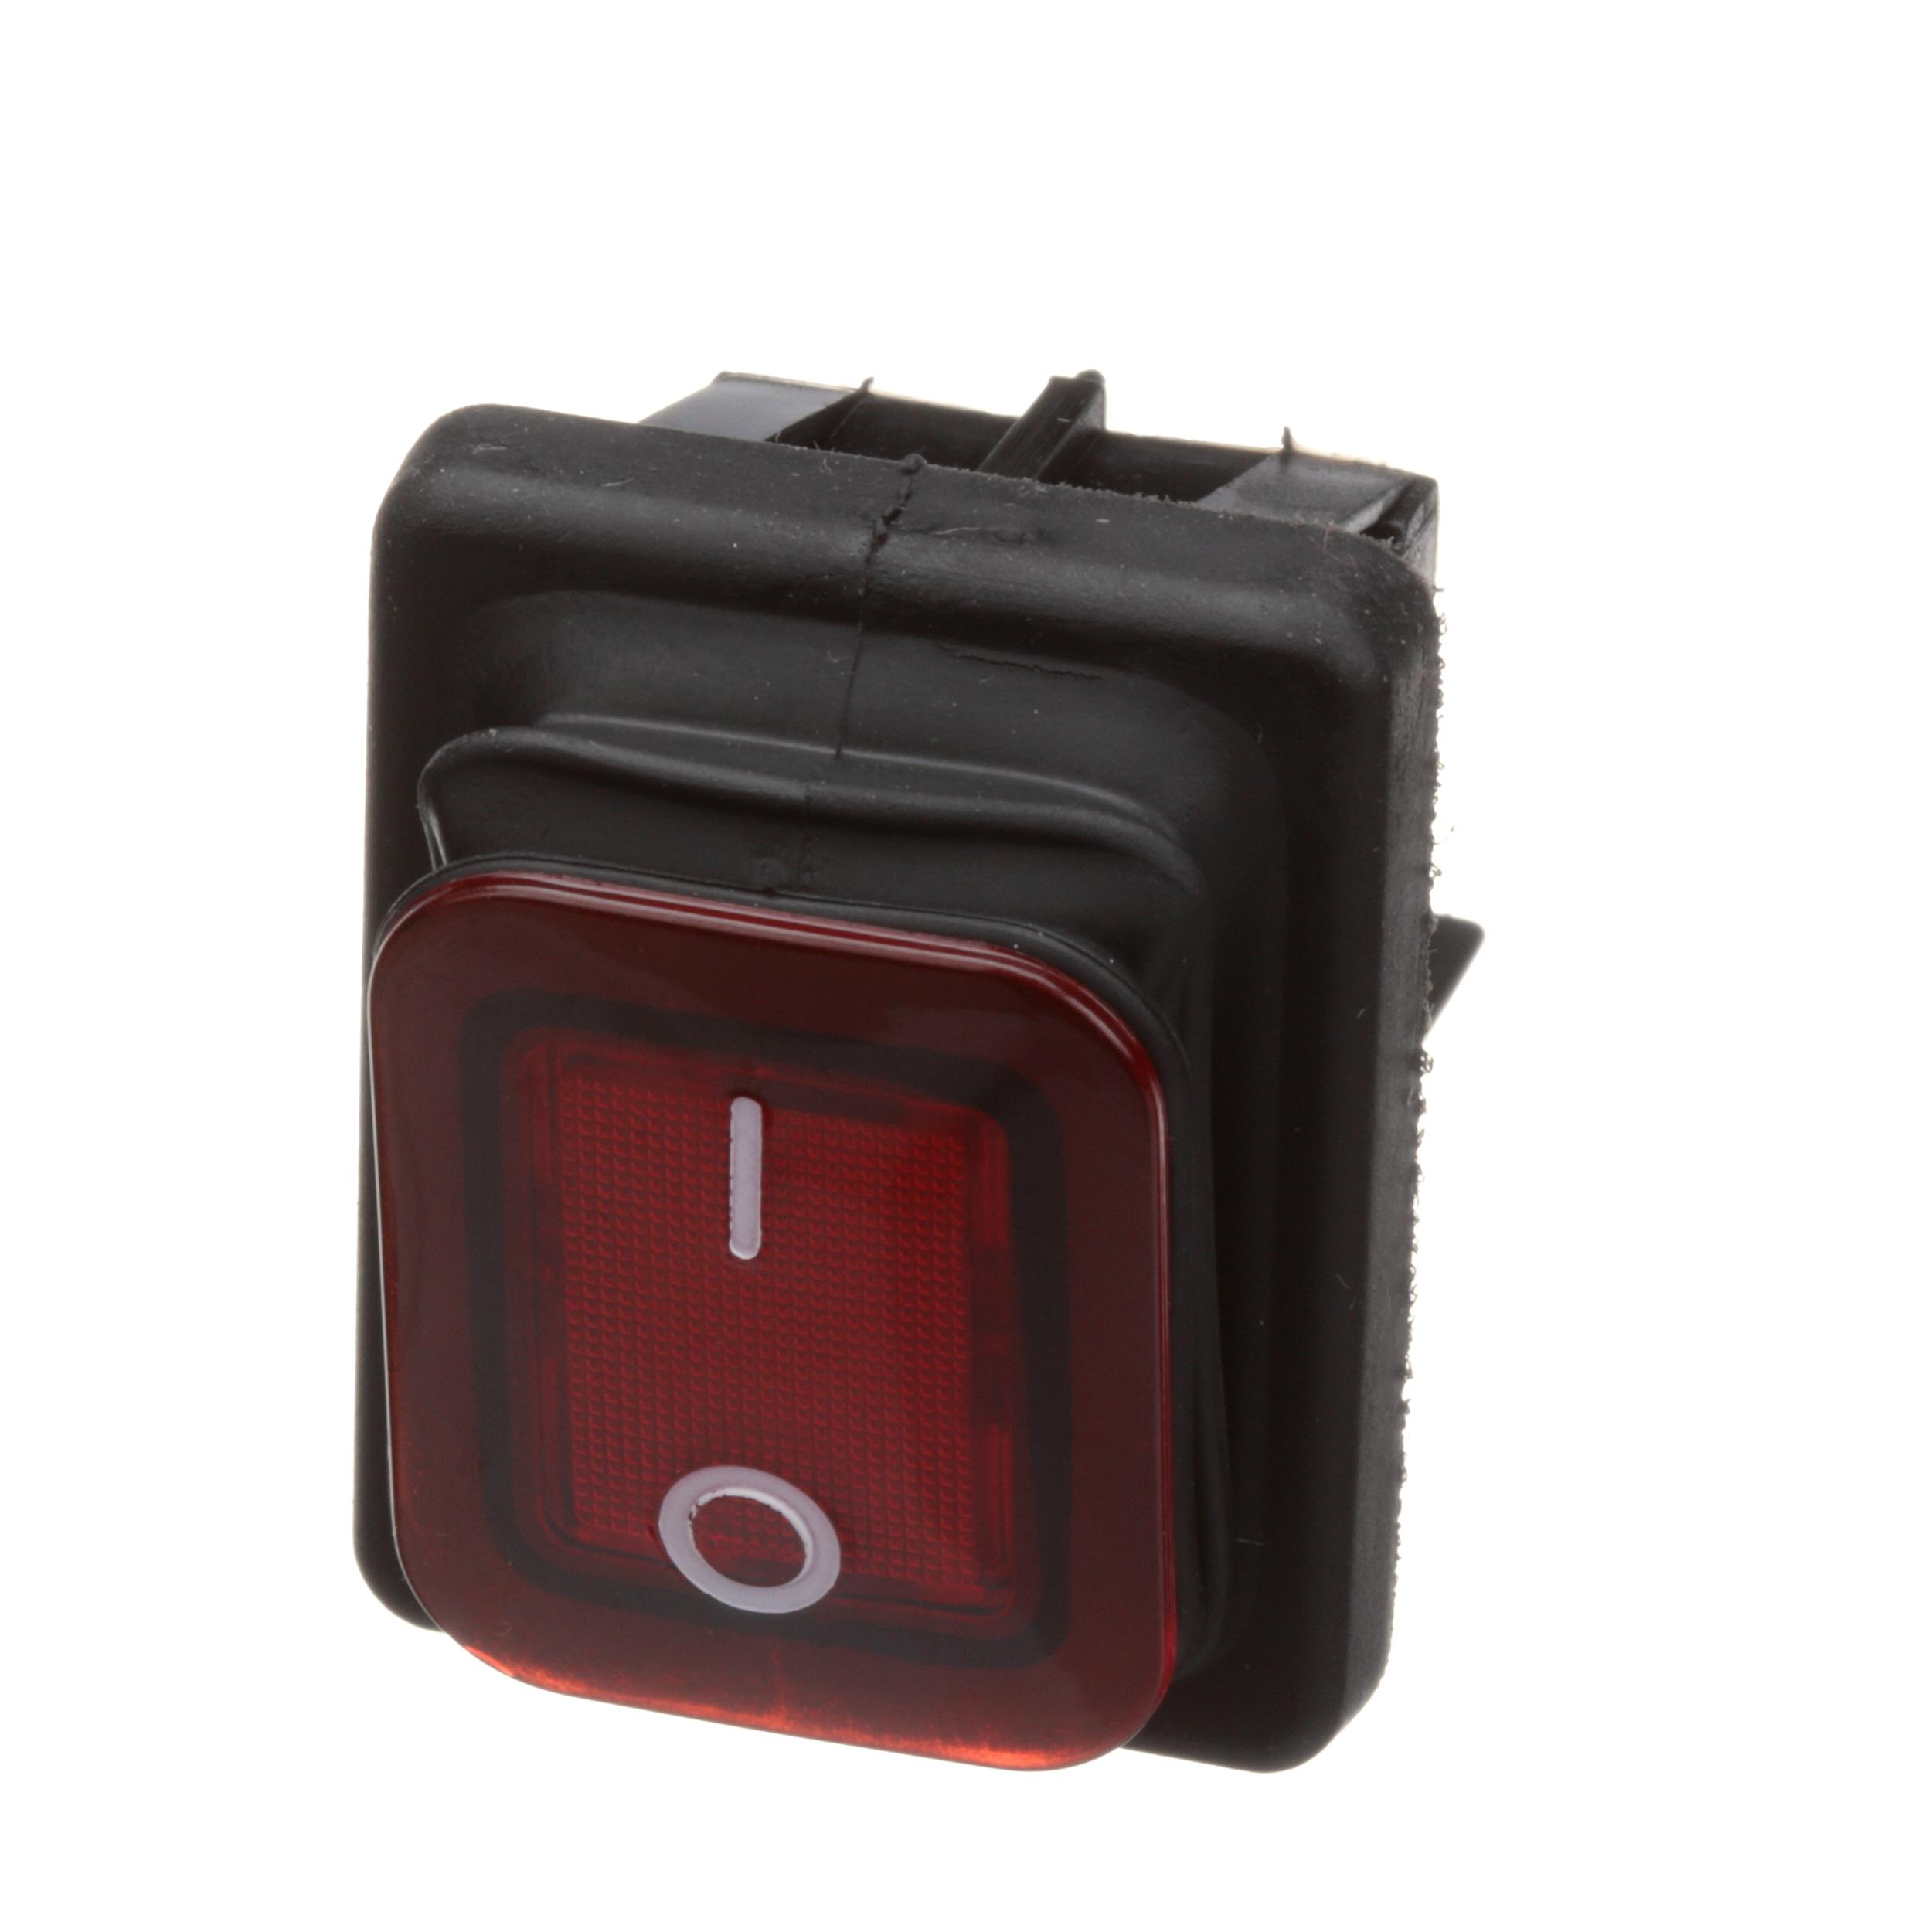 COMMERCIAL PRO RED ON/OFF SWITCH W/ BOOT